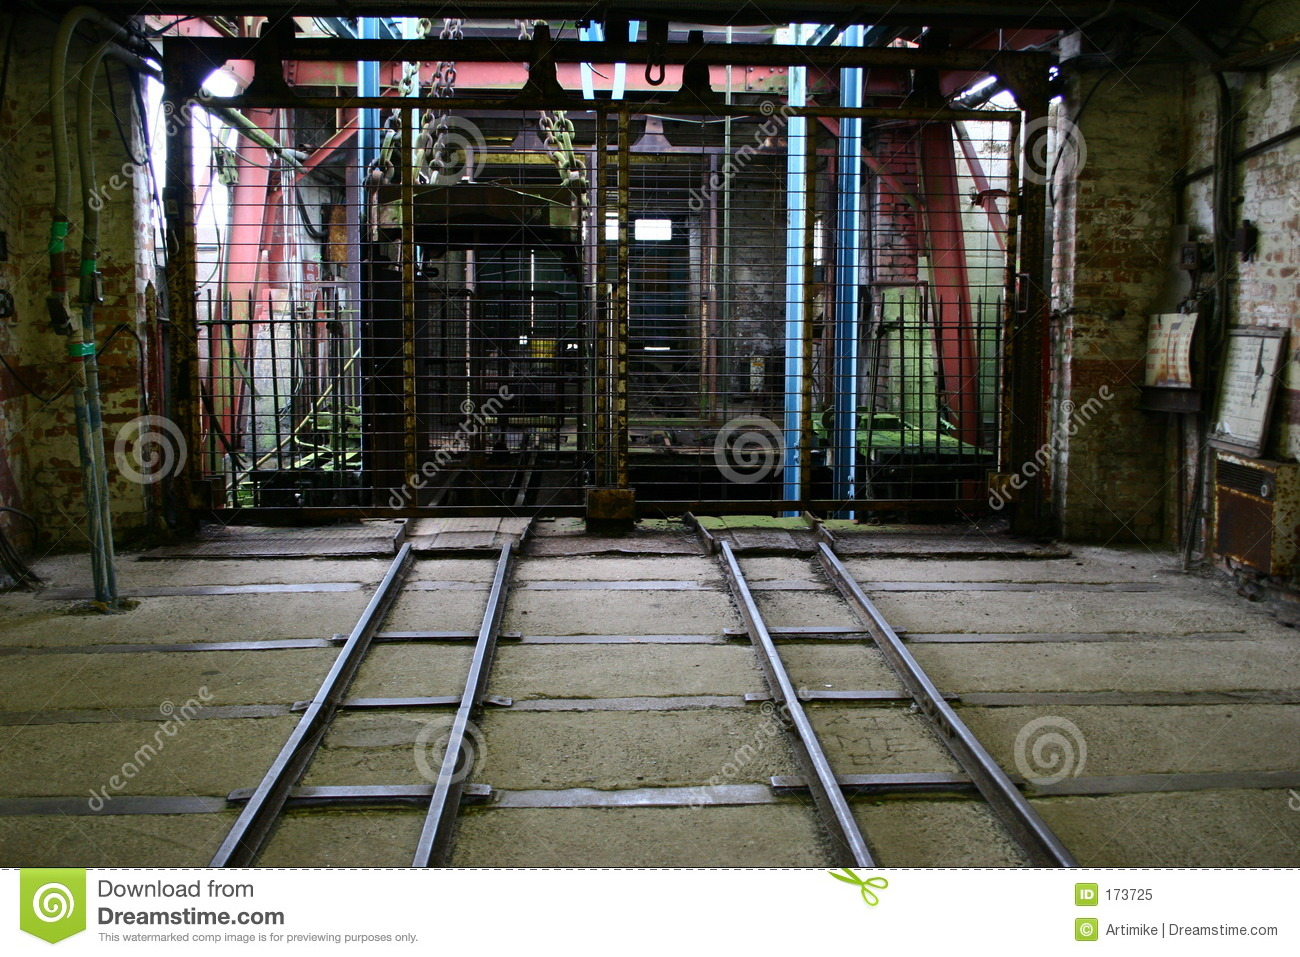 Entrance to Old Lift Shaft